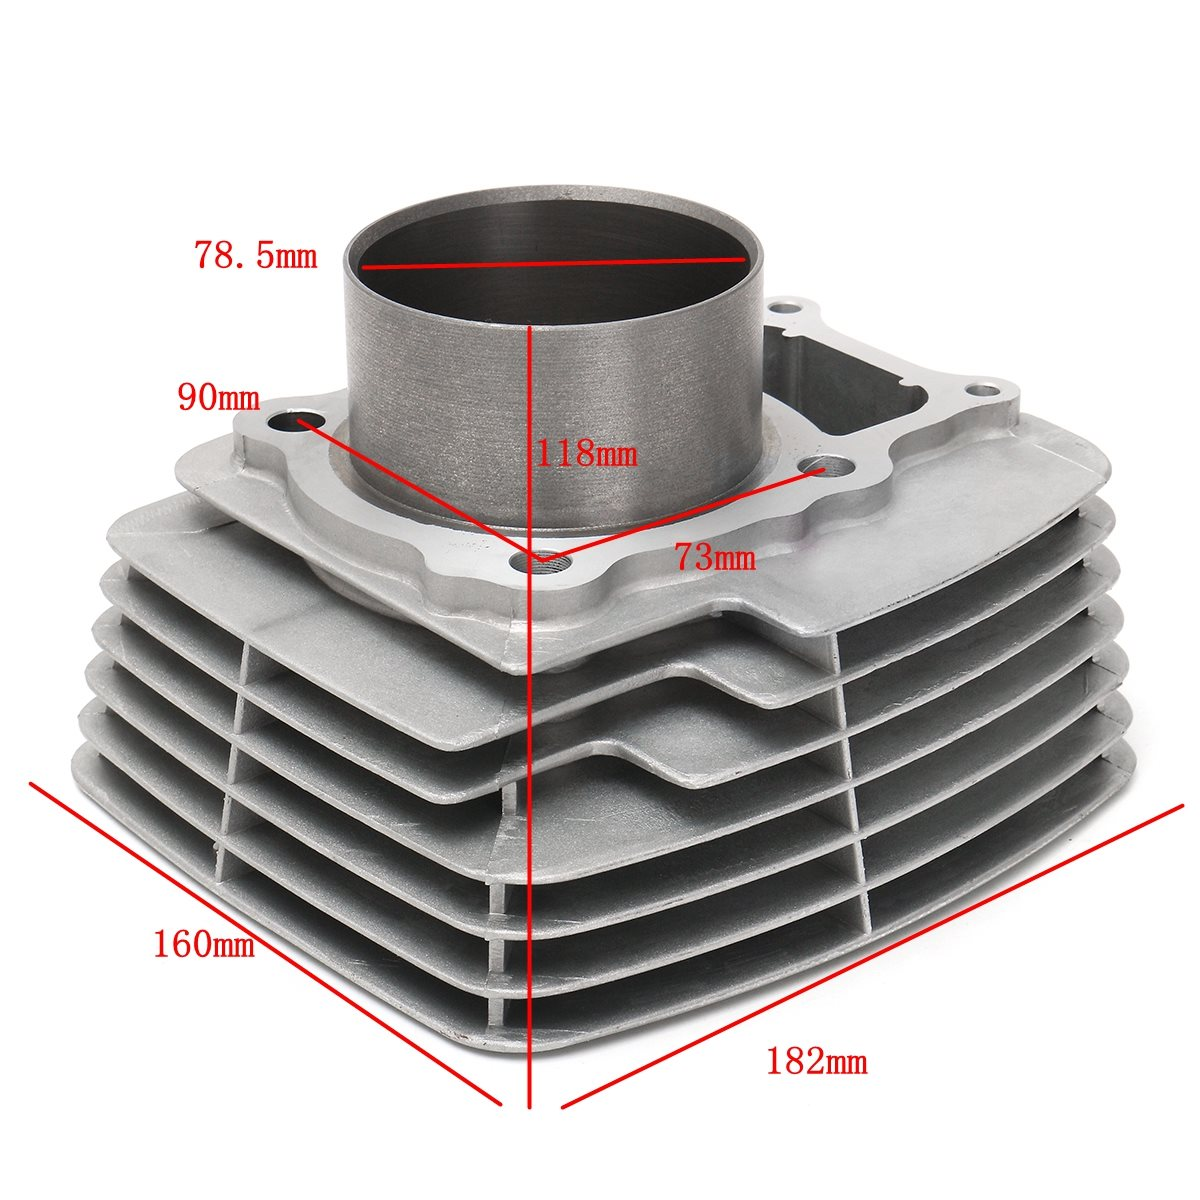 ATV Cylinder Piston For Spark Plug Oil Fuel Filter For Honda Rancher/TRX  TRX350/TRX 350-in Air Filters & Systems from Automobiles & Motorcycles on  ...